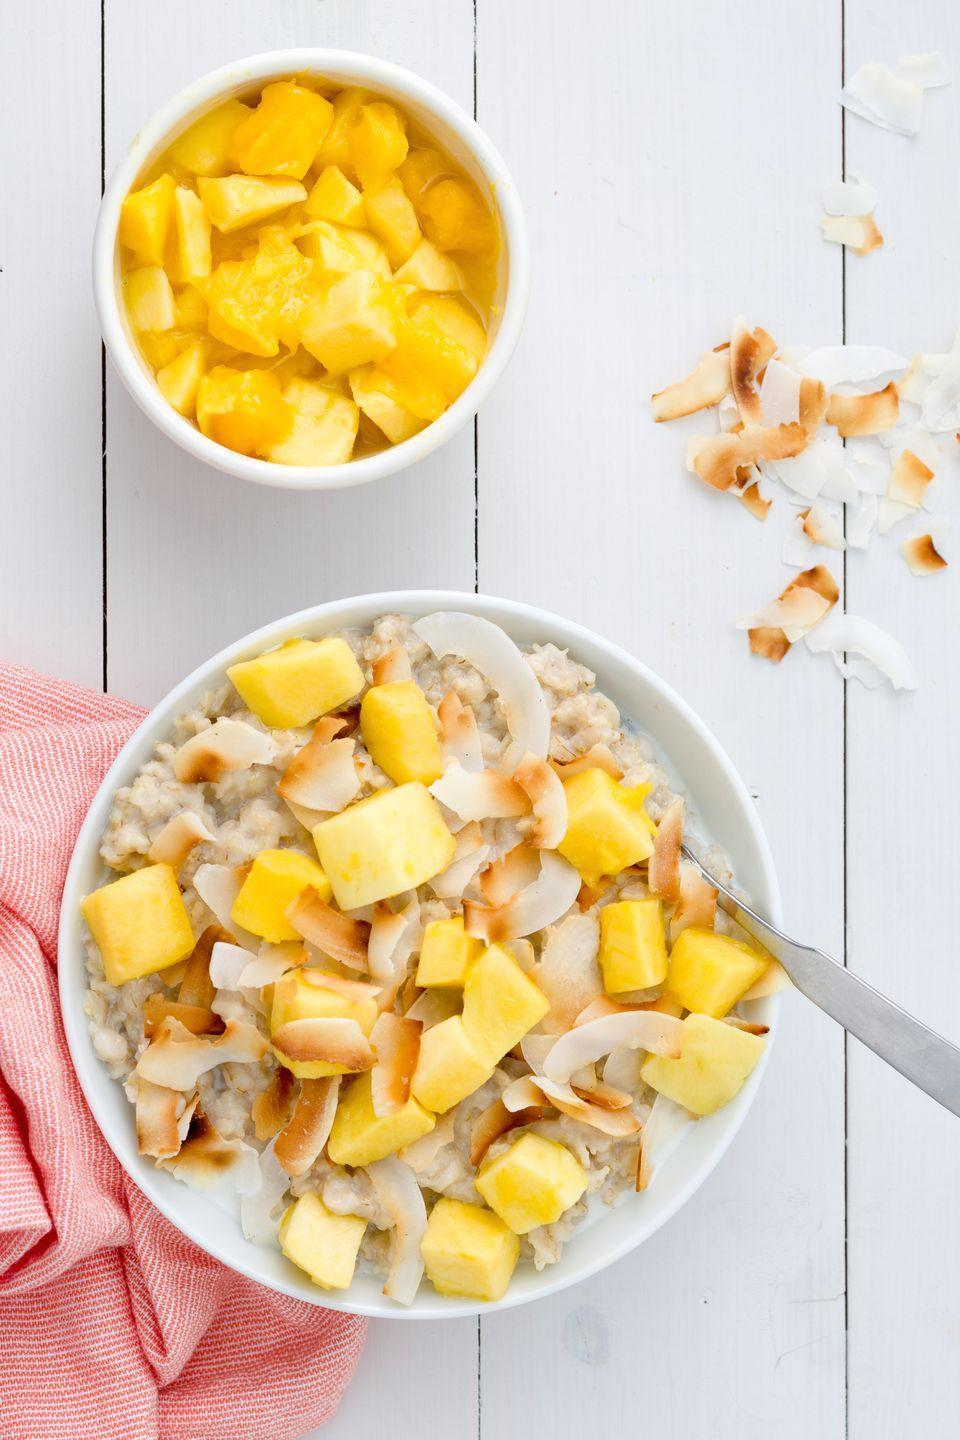 "<p>Cooking the oatmeal in coconut milk gives this bowl a subtly sweet flavor and extra-creamy texture. </p><p>Get the recipe from <a href=""https://www.delish.com/cooking/recipe-ideas/recipes/a44492/tropical-oatmeal-recipe/"" rel=""nofollow noopener"" target=""_blank"" data-ylk=""slk:Delish"" class=""link rapid-noclick-resp"">Delish</a>.</p>"